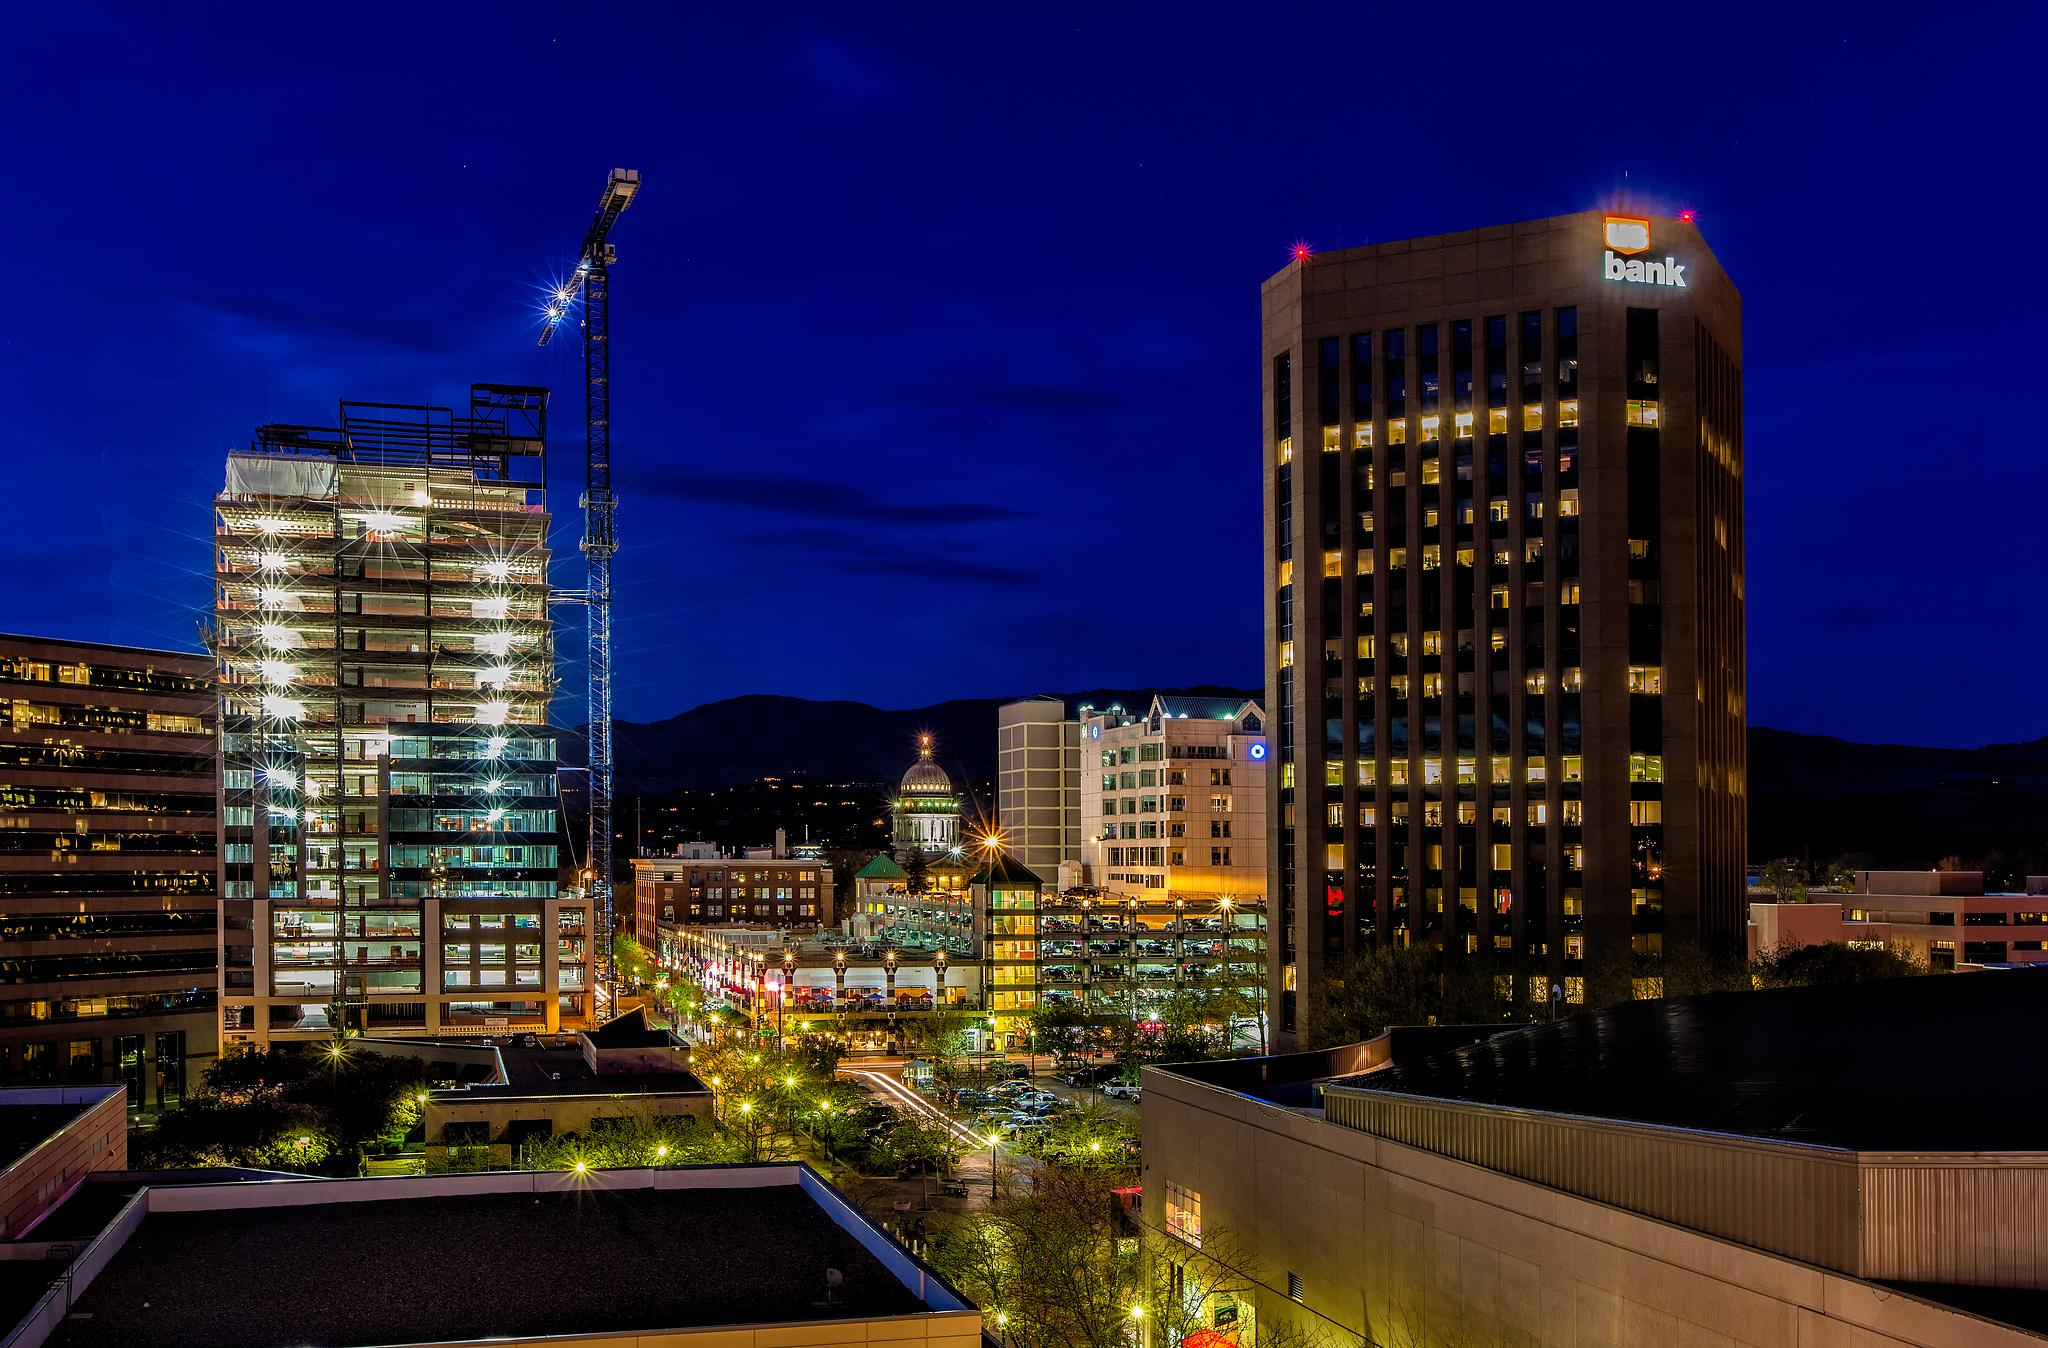 Boise, Idaho at Night by Bob Vaughan